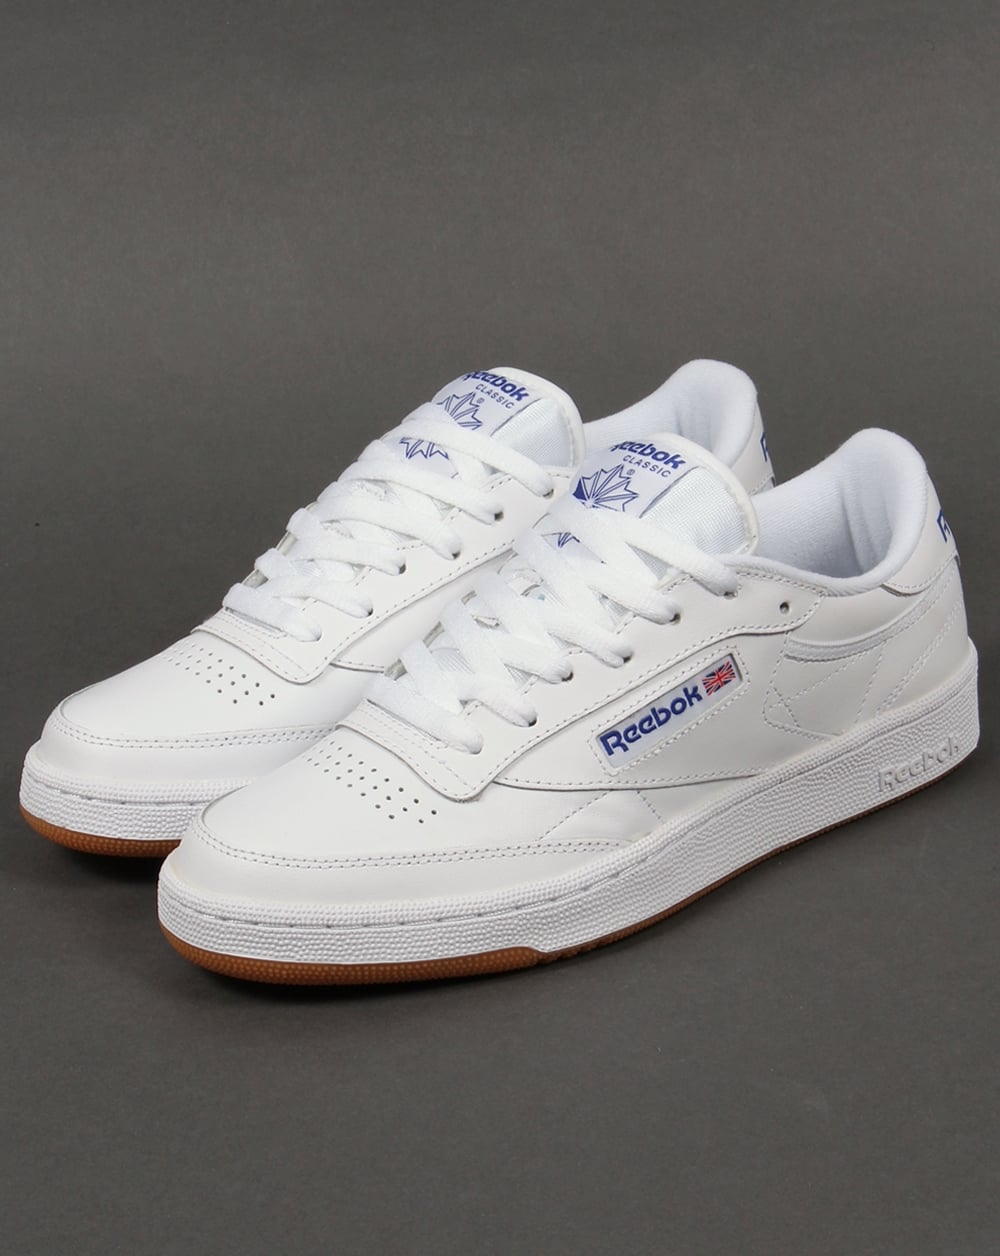 reebok club c 85 trainers white royal gum shoe gum mens. Black Bedroom Furniture Sets. Home Design Ideas